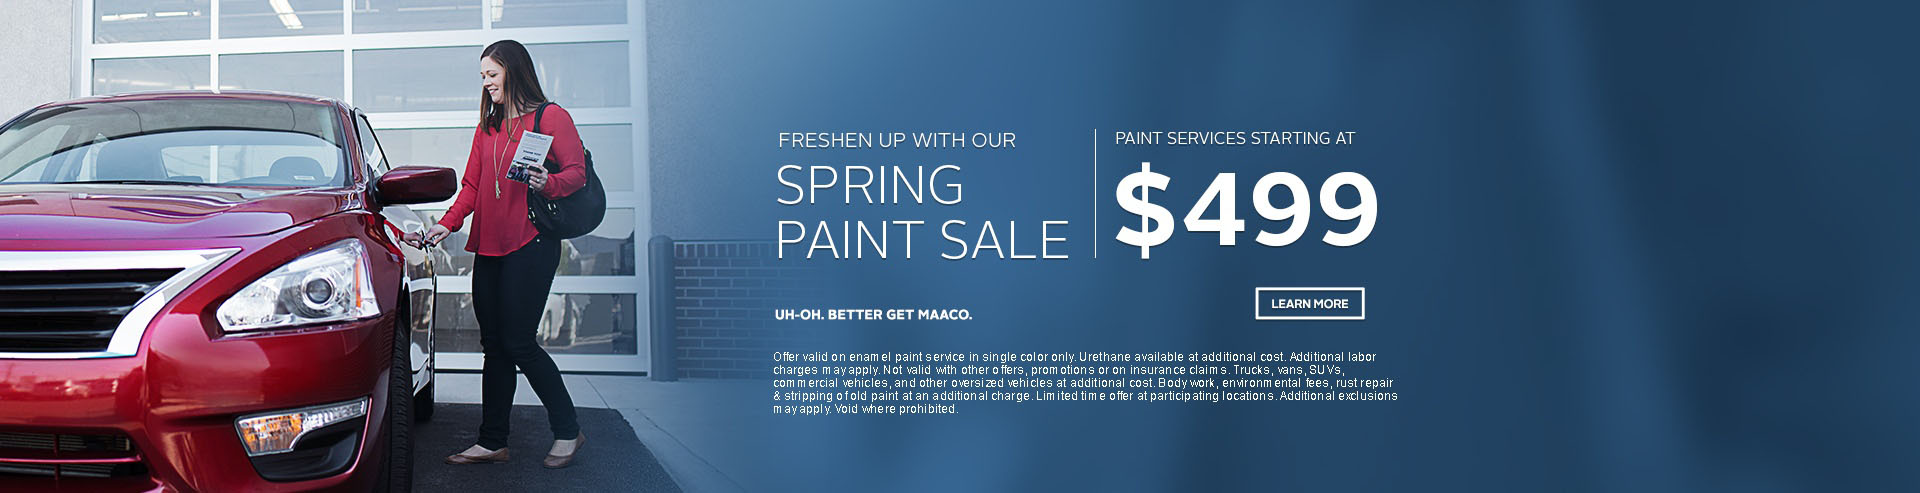 Maaco: Spring Paint Sale Starting at: $499, click Learn More for further details.